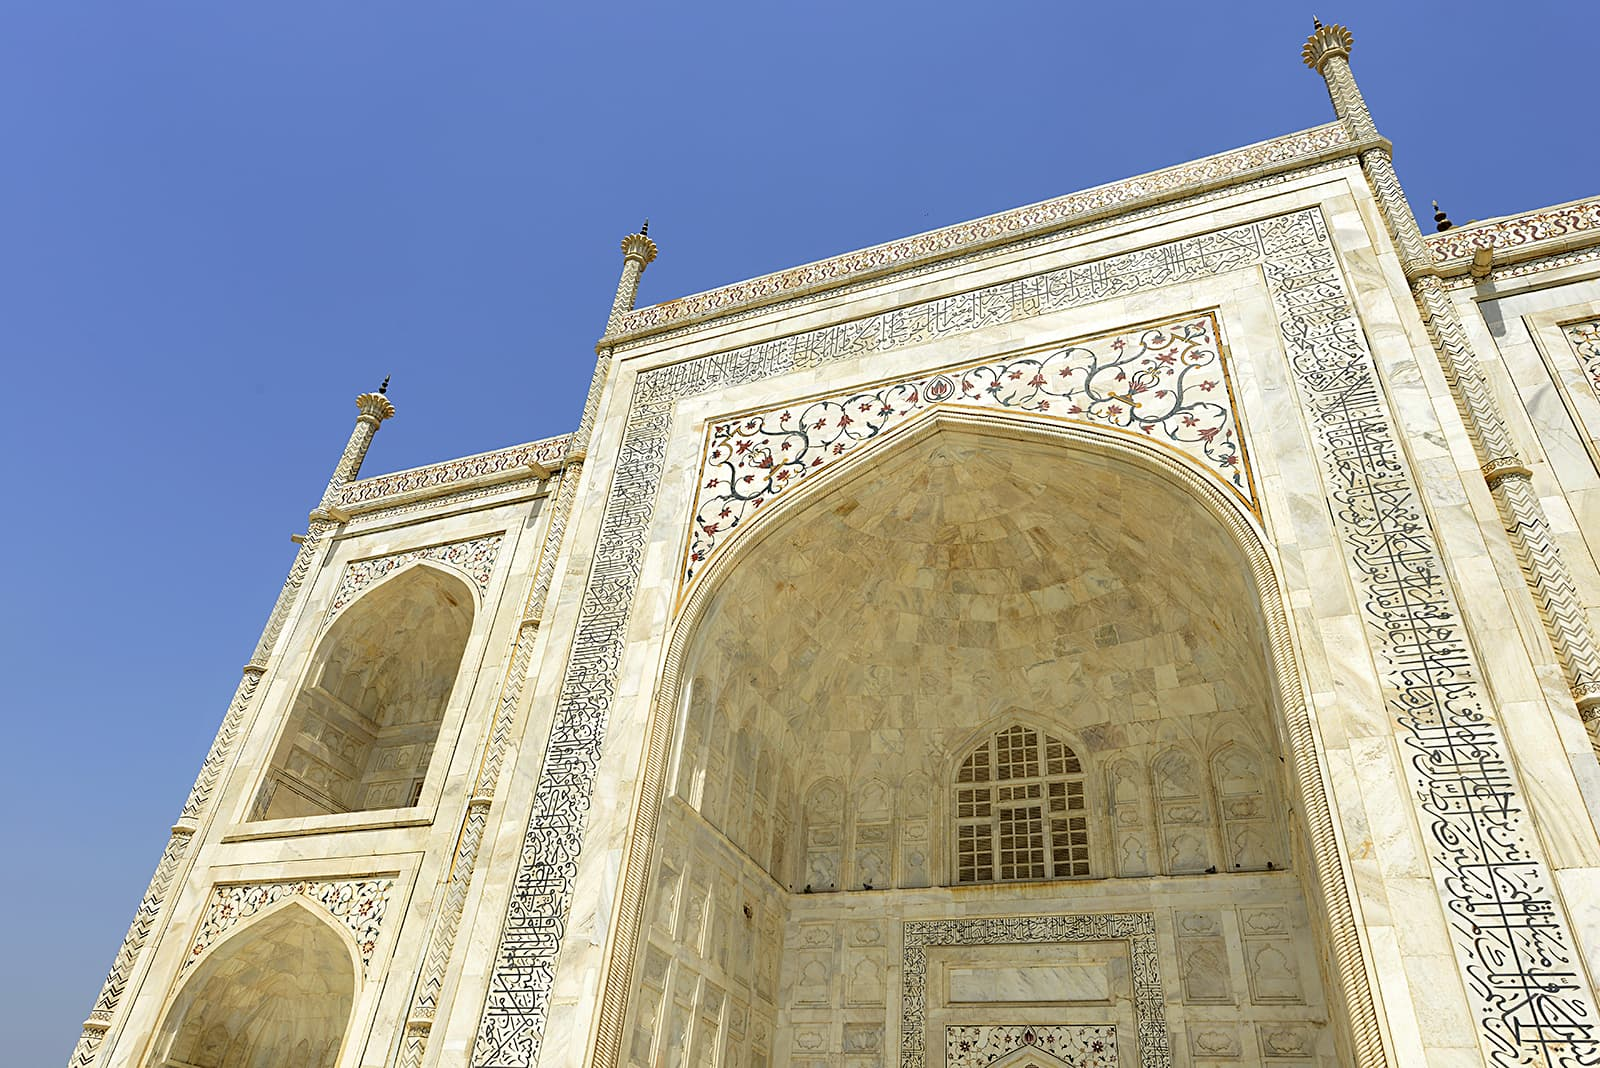 A closer view of the Taj Mahal. Author provided.